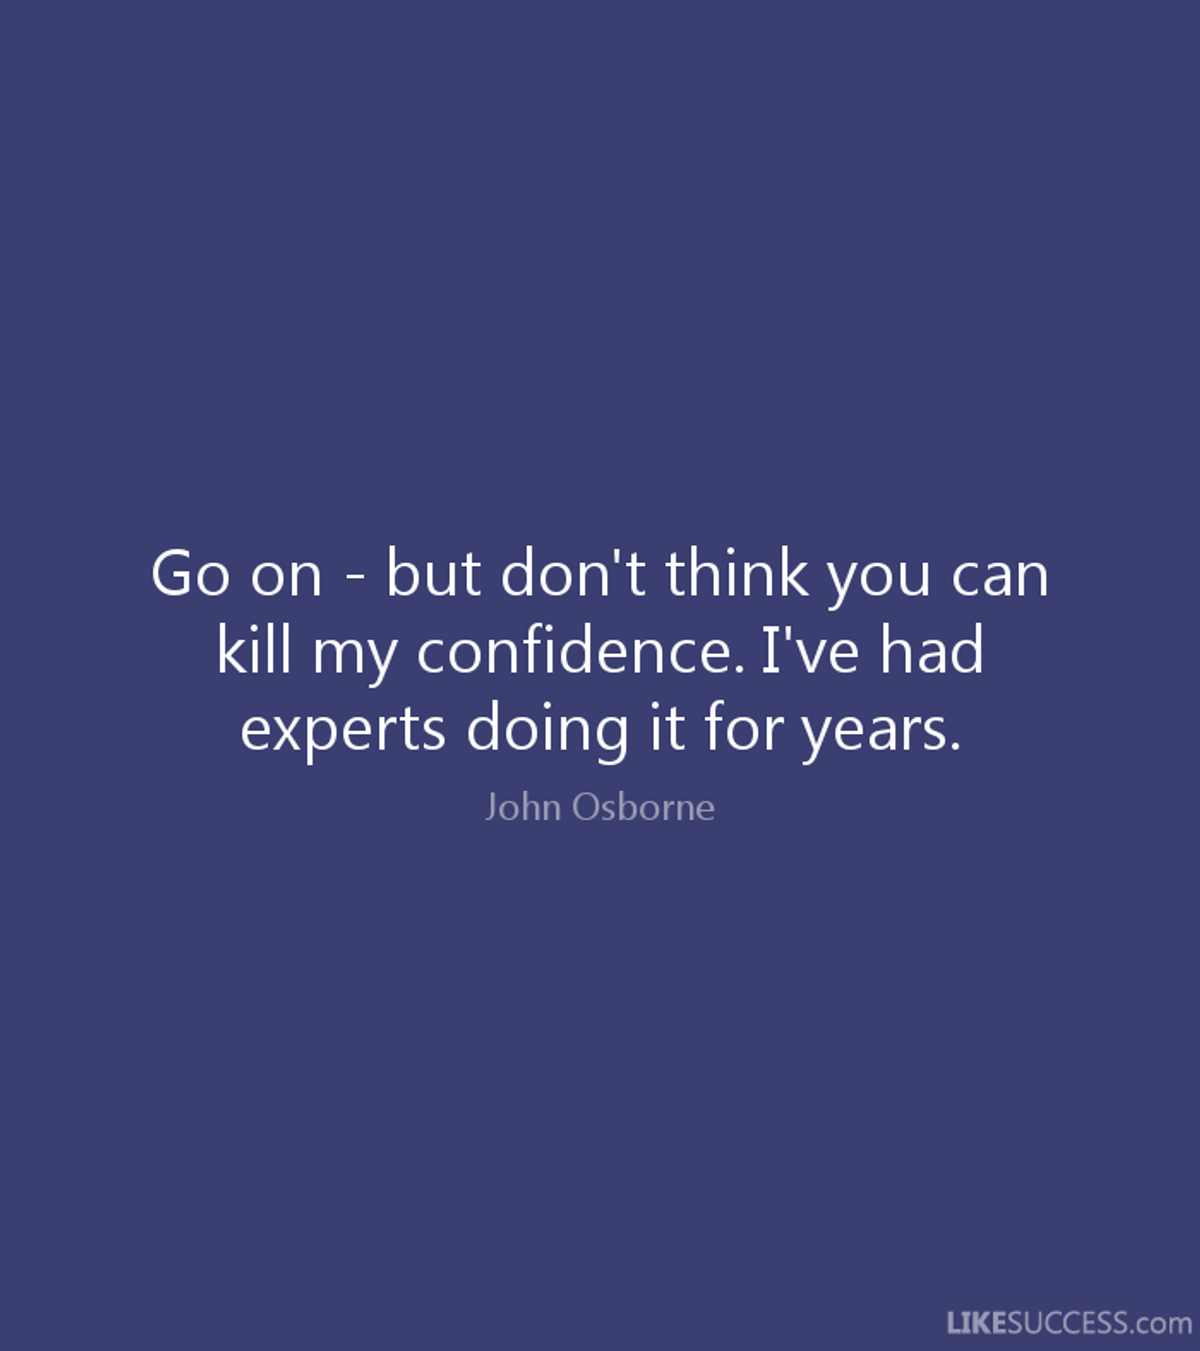 To The Person Who Killed My Confidence